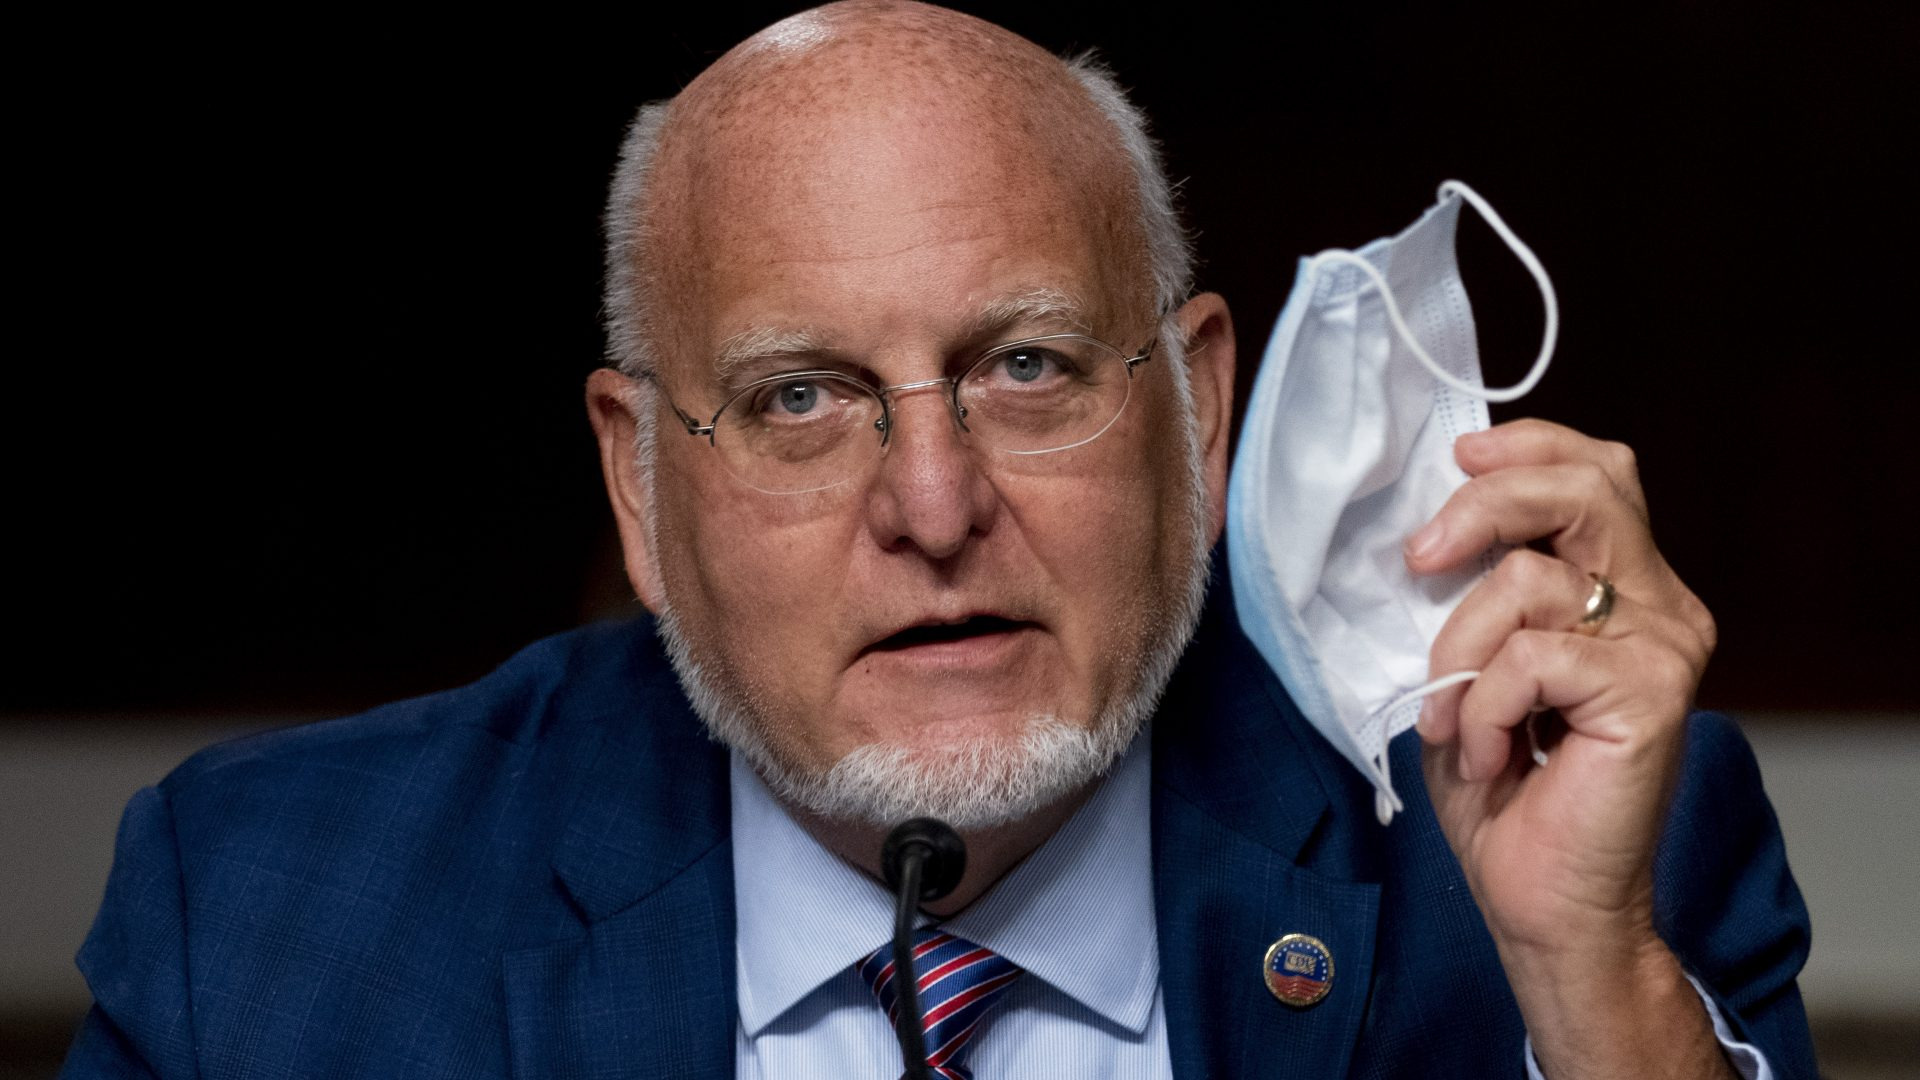 CDC Director Dr. Robert Redfield says wearing a mask may provide better protection against COVID-19 than a vaccine.